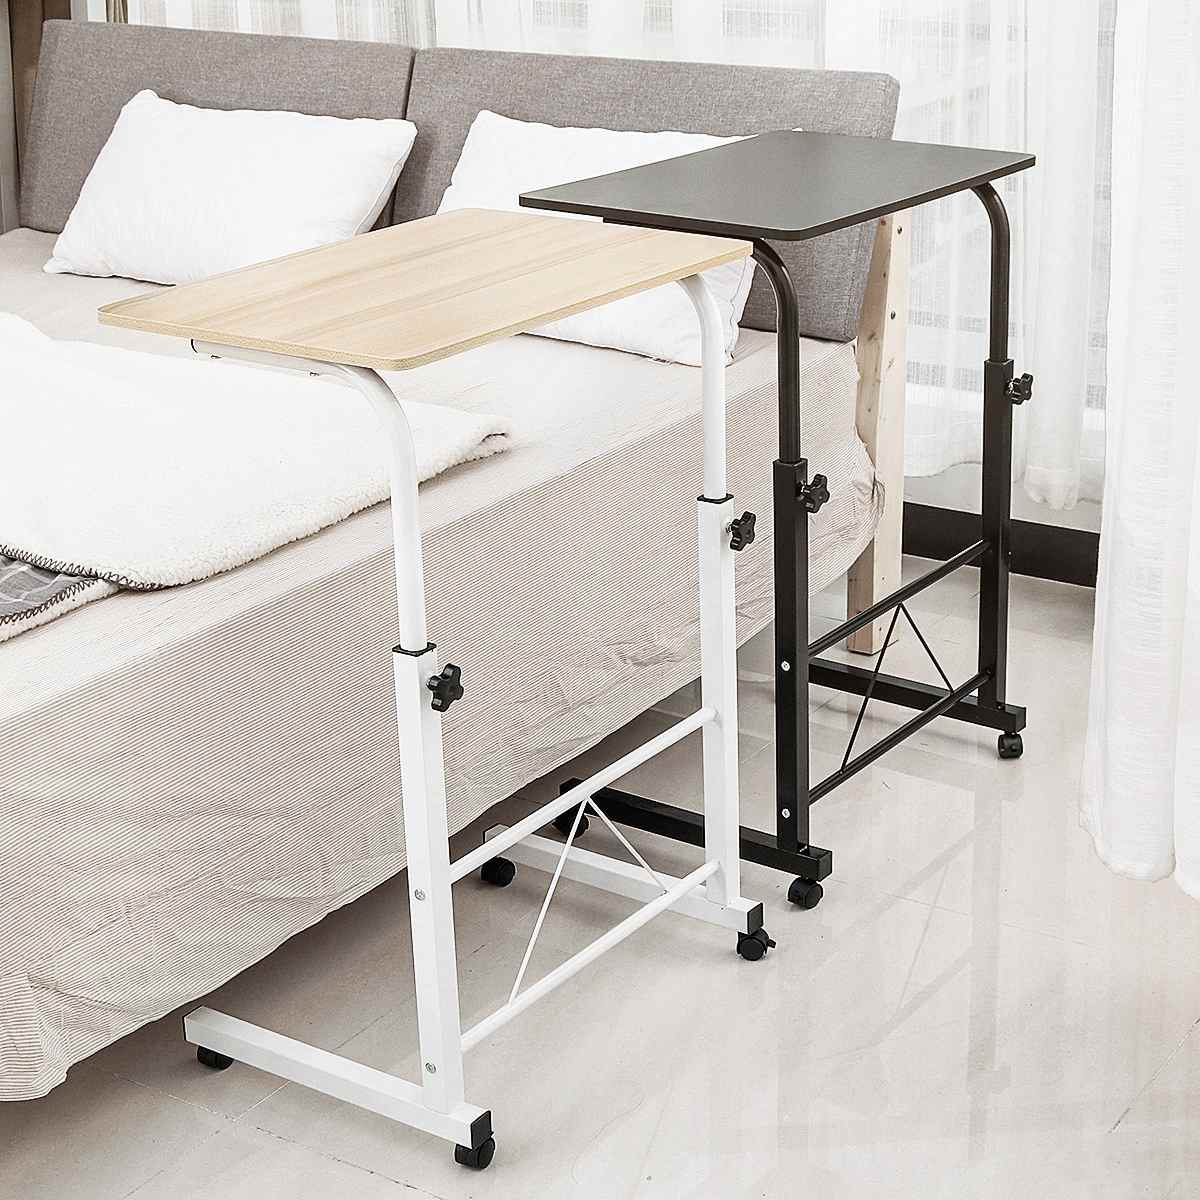 Foldable Computer Desk Table Adjustable Portable Laptop Desk Rolling Laptop Table Bedside Sofa Standing Home Office Furniture